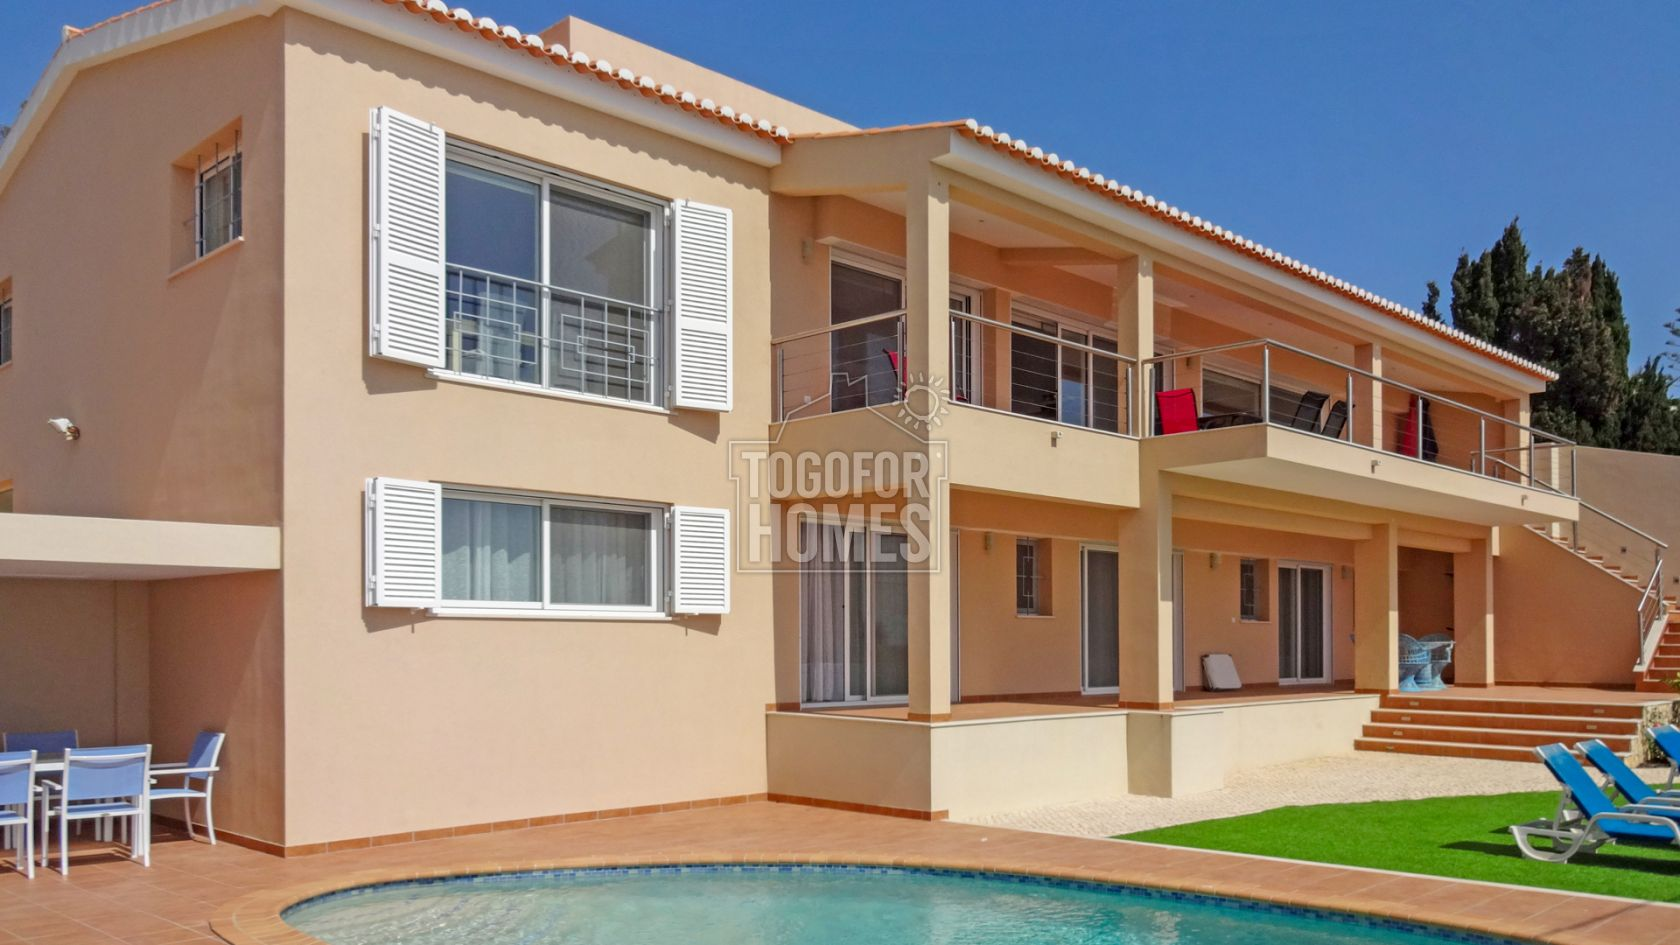 Contemporary front line 4 bedroom villa 10m from beach praia da luz near lagos lg825 togofor homes